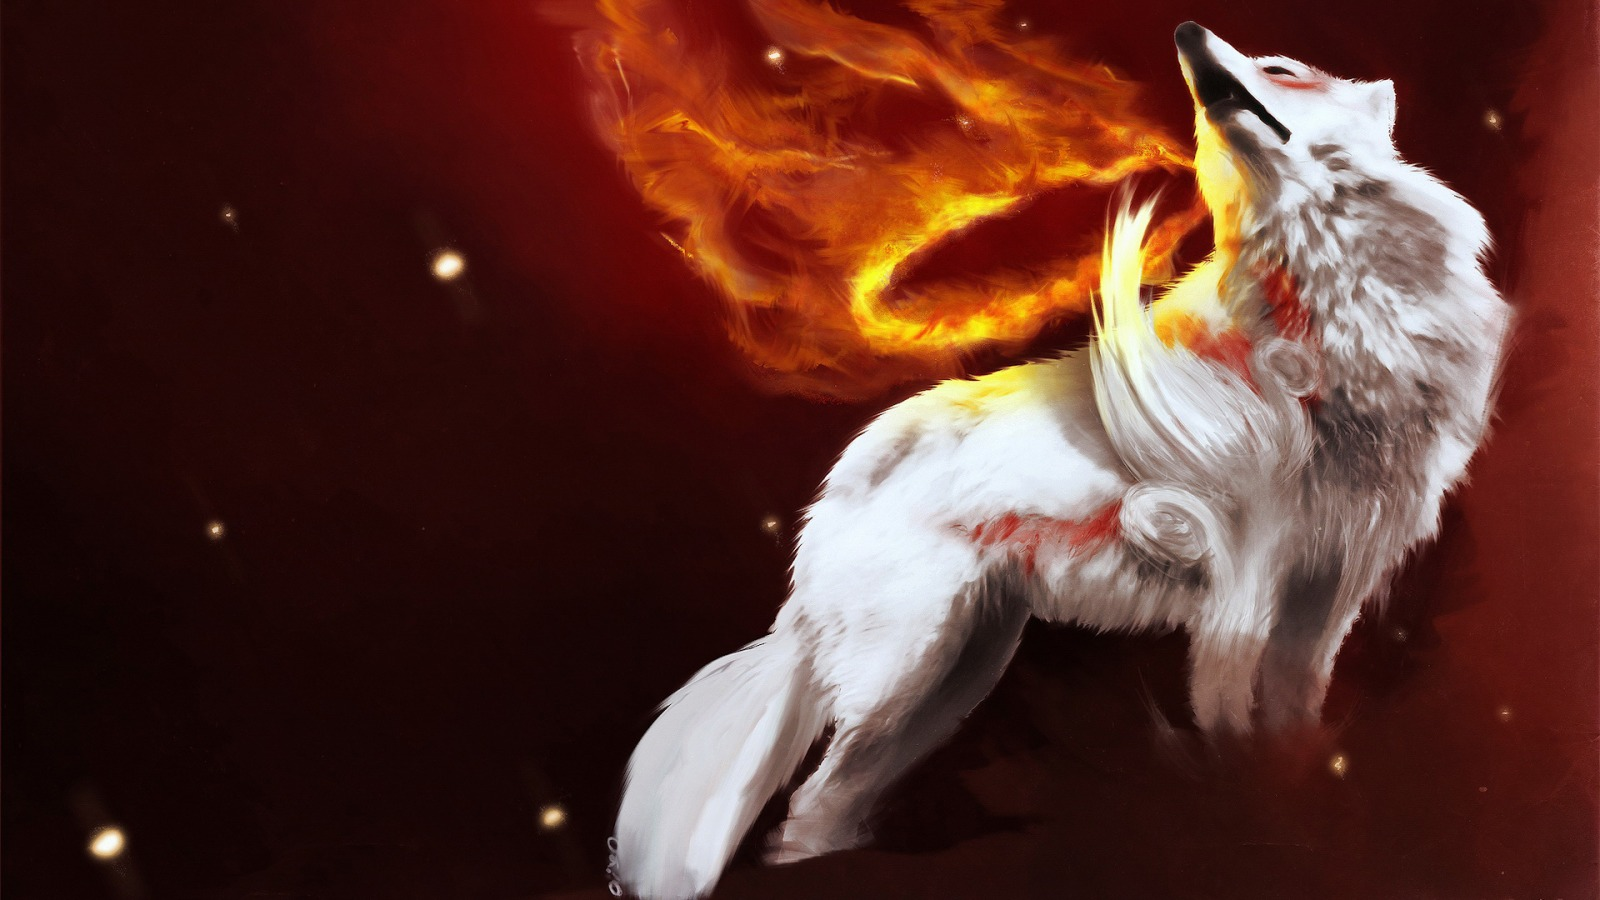 Okami Wallpaper Japanese Characters Anime Animated Wallpapers In Jpg